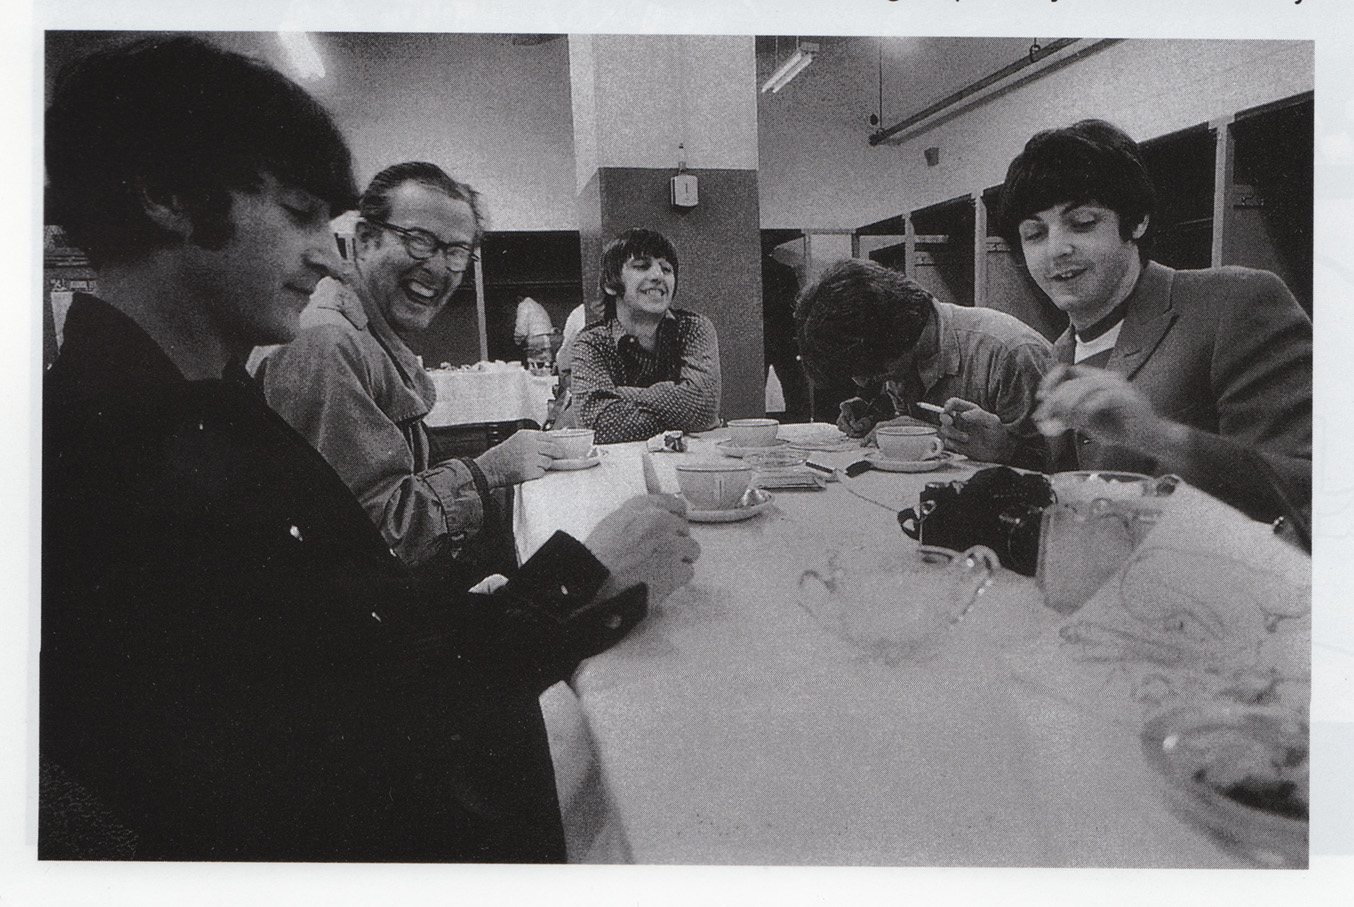 Ralph Gleason With The Beatles Backstage At Candlestick Park